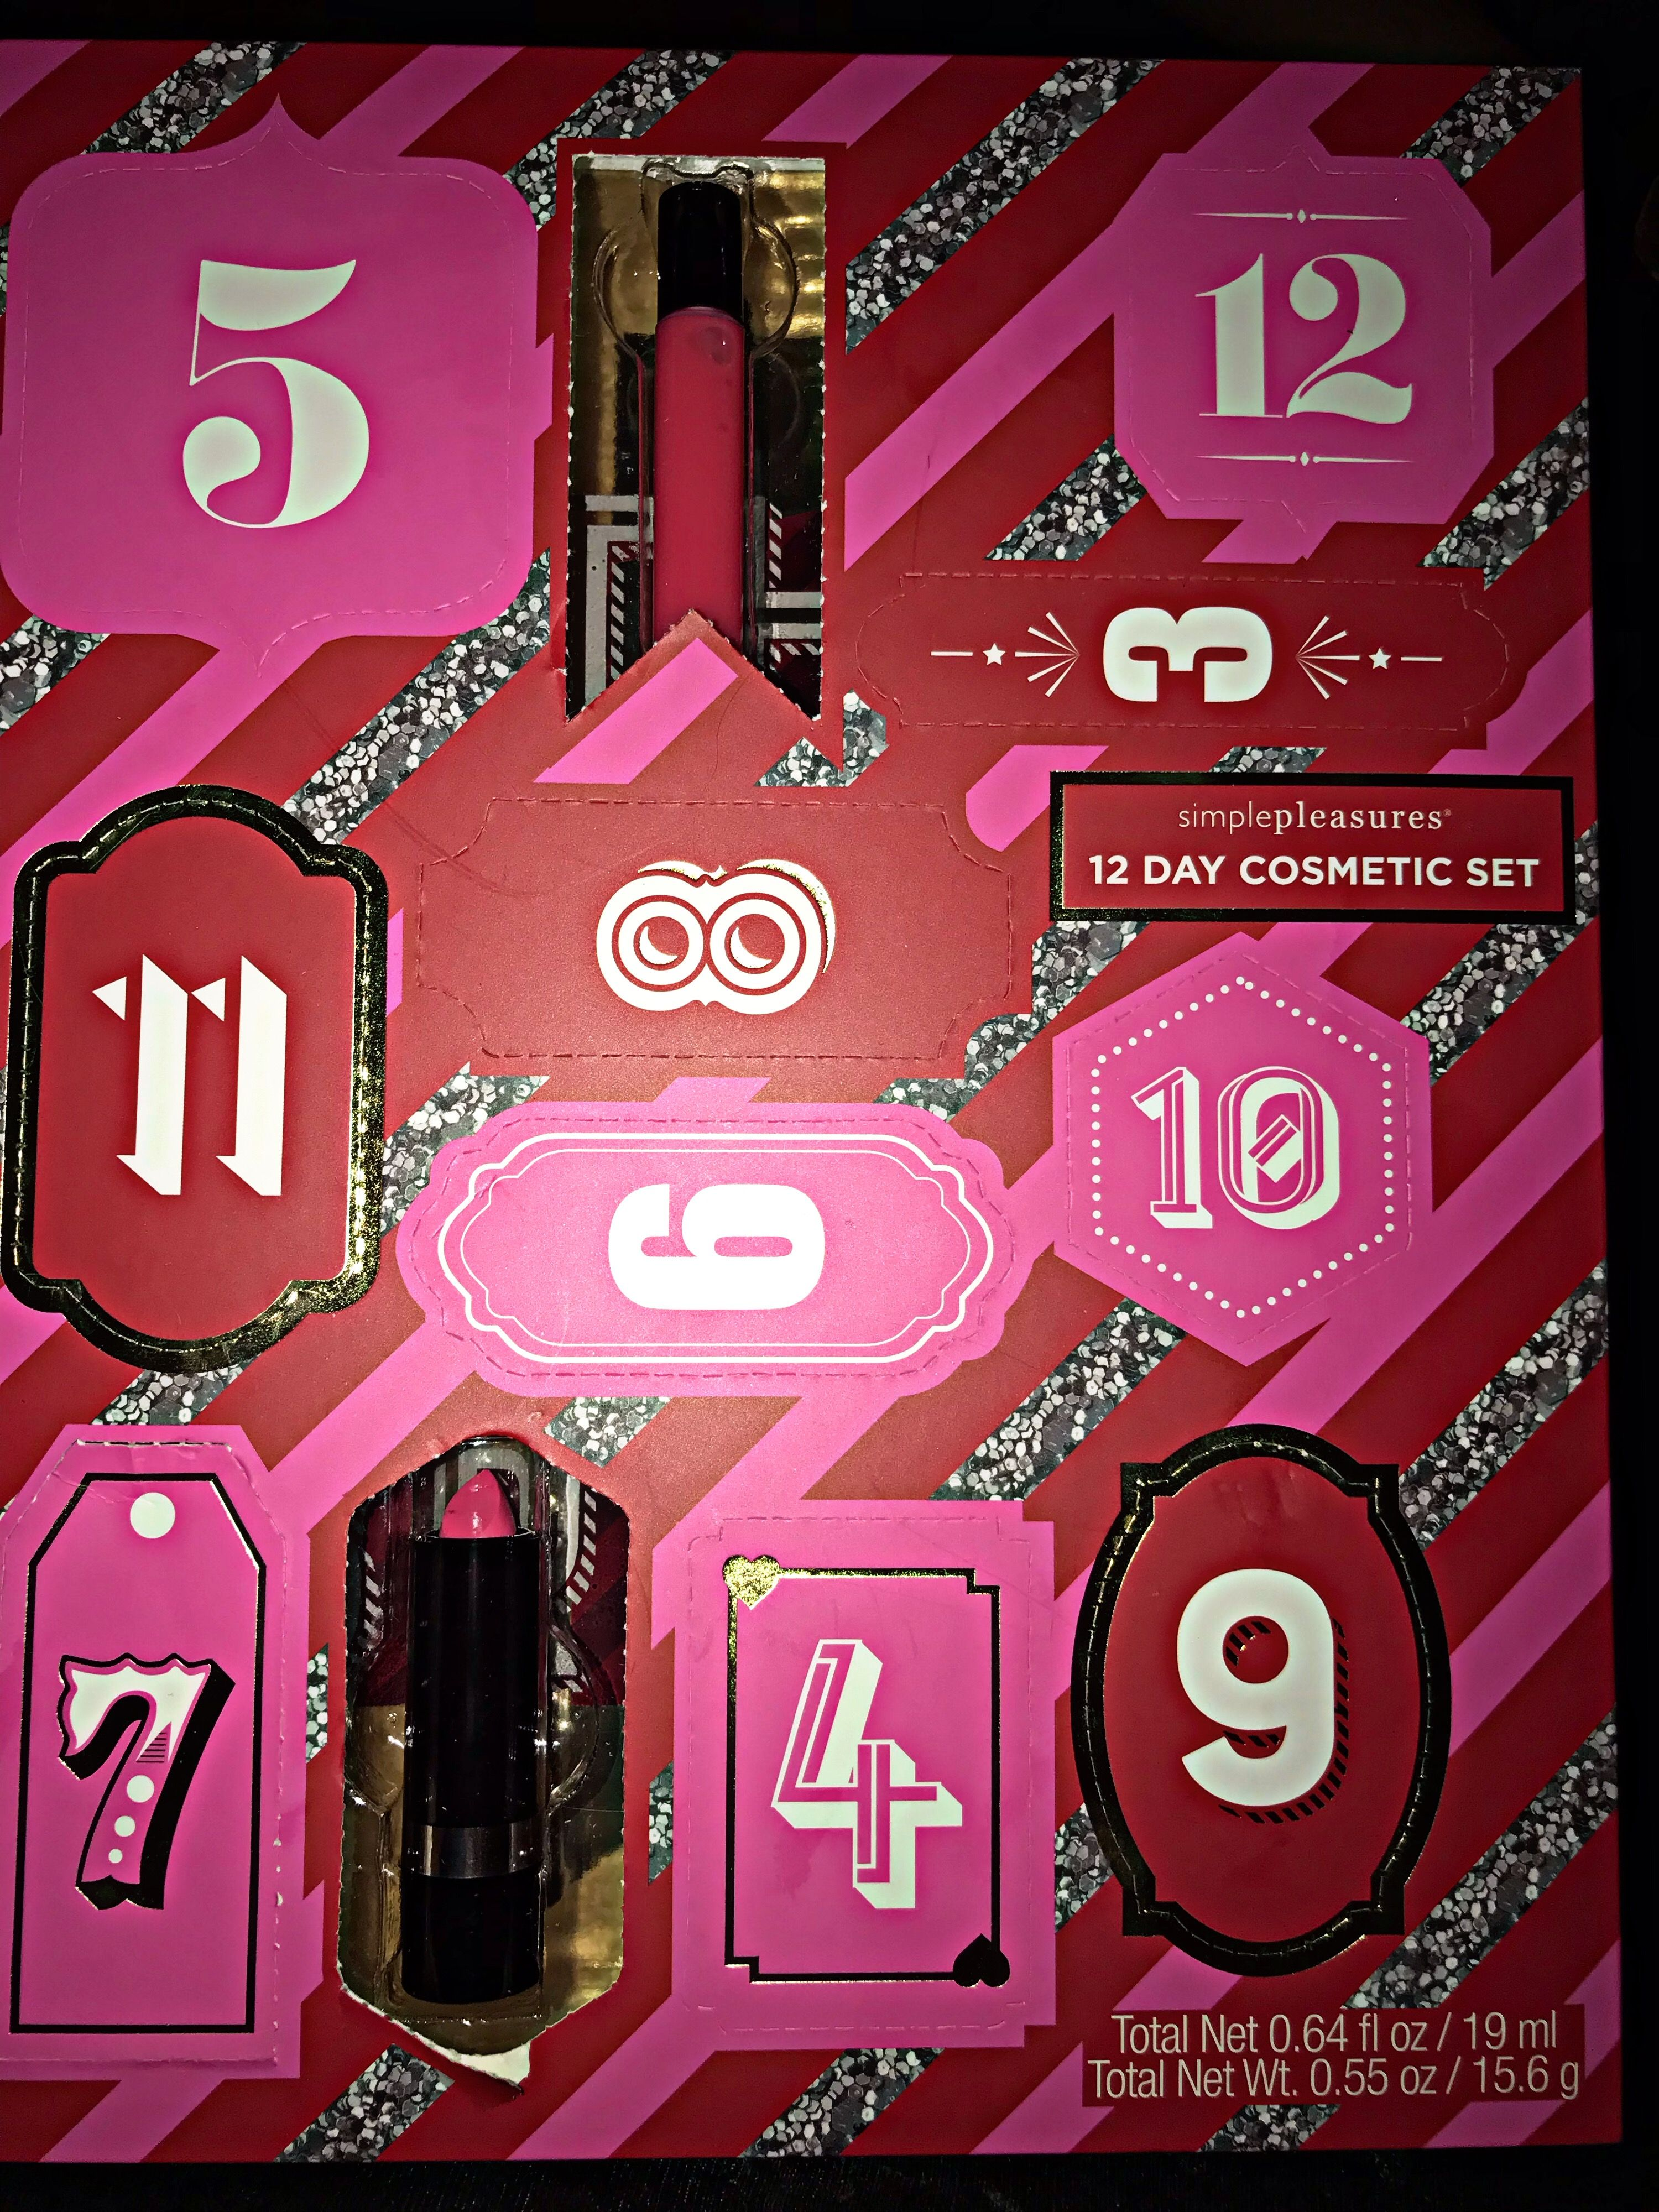 My Daughter S Beauty Advent Calendar Simple Pleasures 12 Day Cosmetics Set Christmas Ca Beauty Advent Calendar Cosmetic Sets Christmas Countdown Calendar